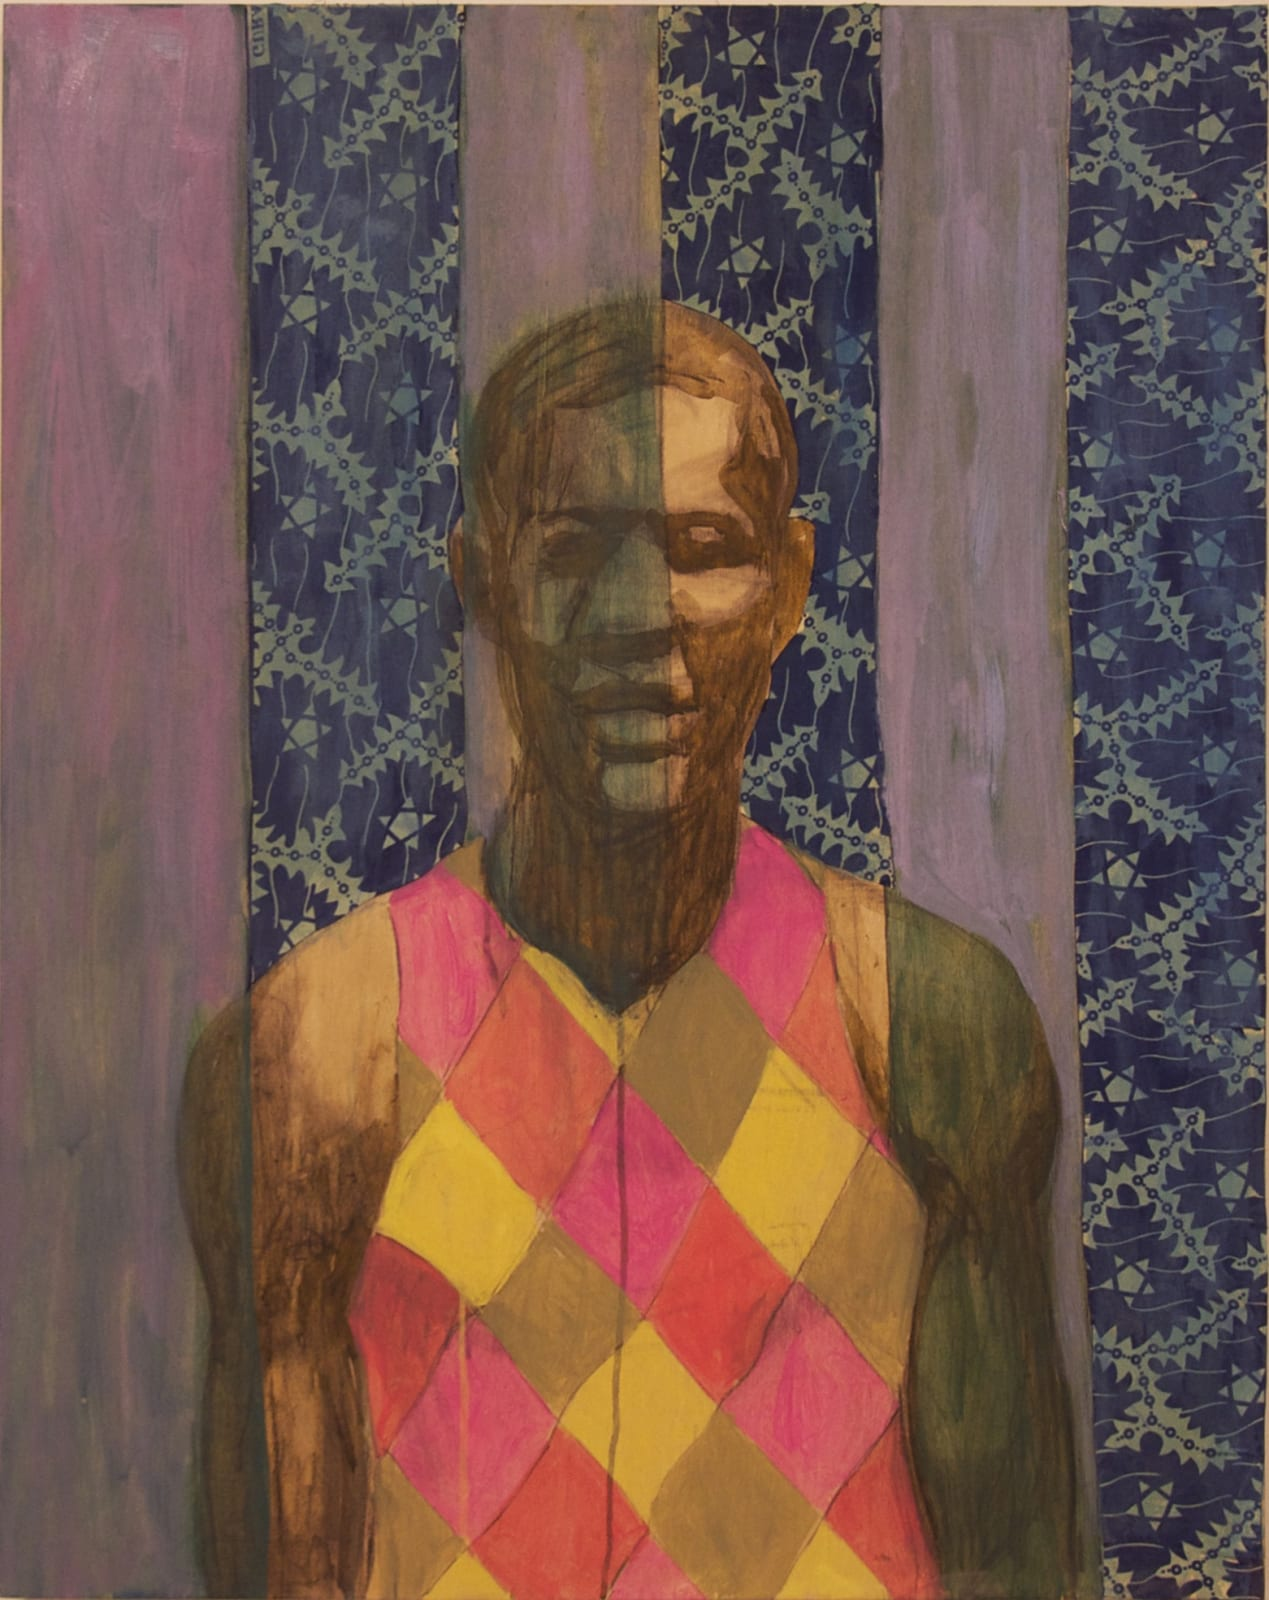 Derek Fordjour  Modest Percolation, 2015  Oil, acrylic, newspaper and fabric on wood panel  30 x 24 in.